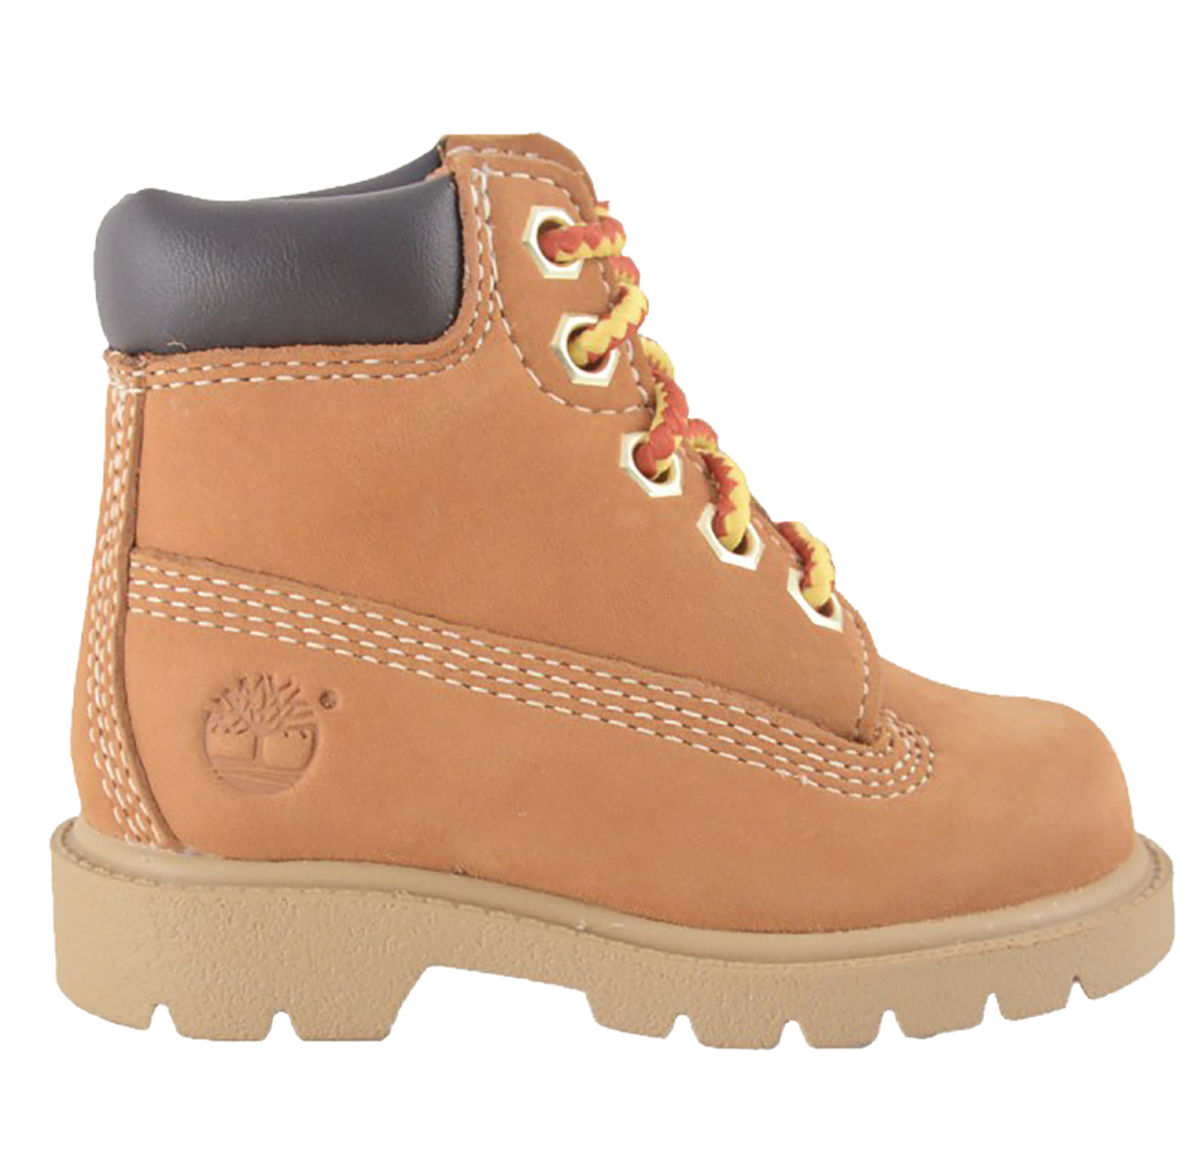 Timberland 6 Inch Classic Infant/Toddler Waterproof Boot